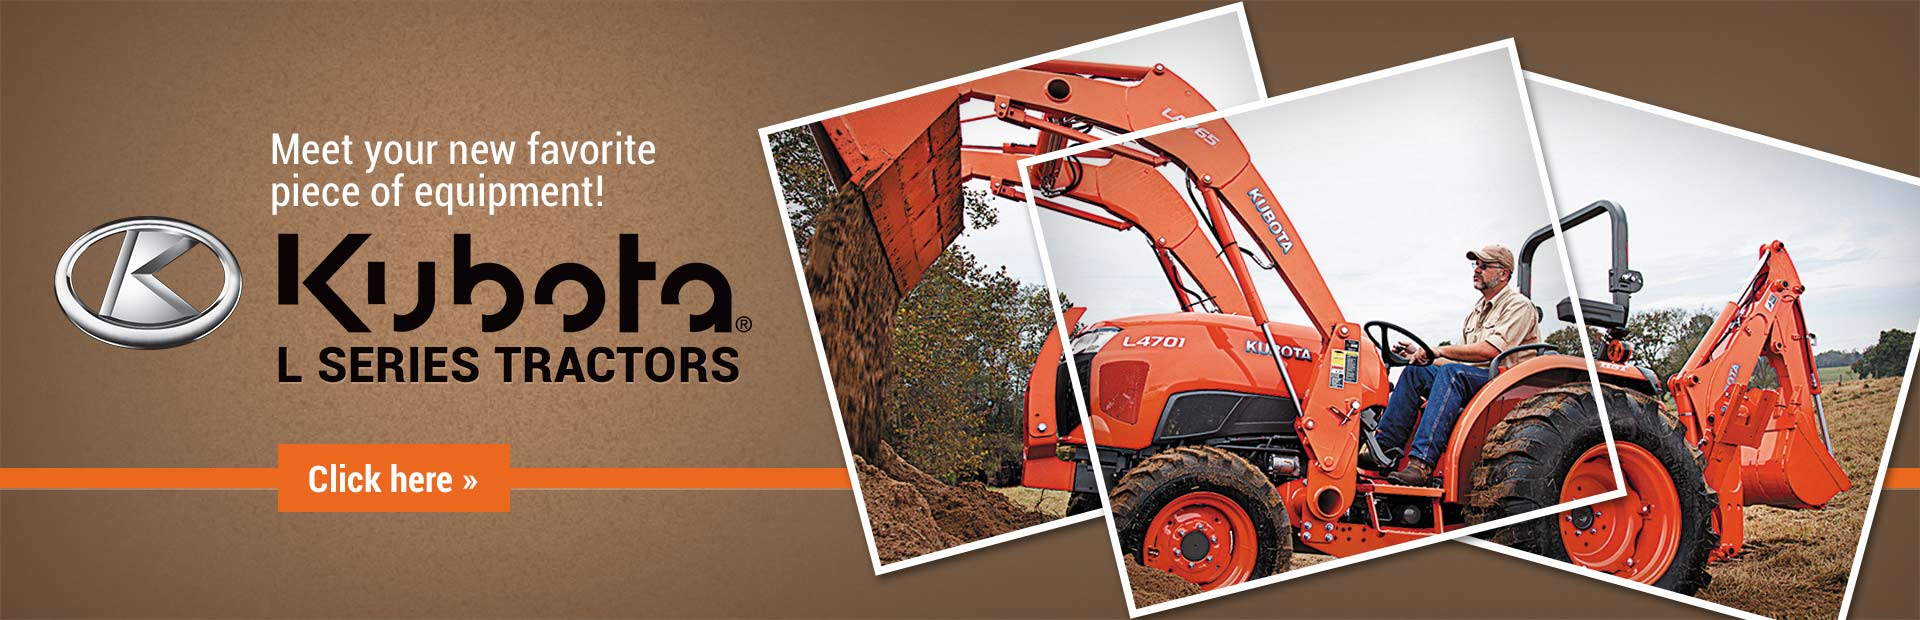 Click here to view our selection of Kubota L series tractors!